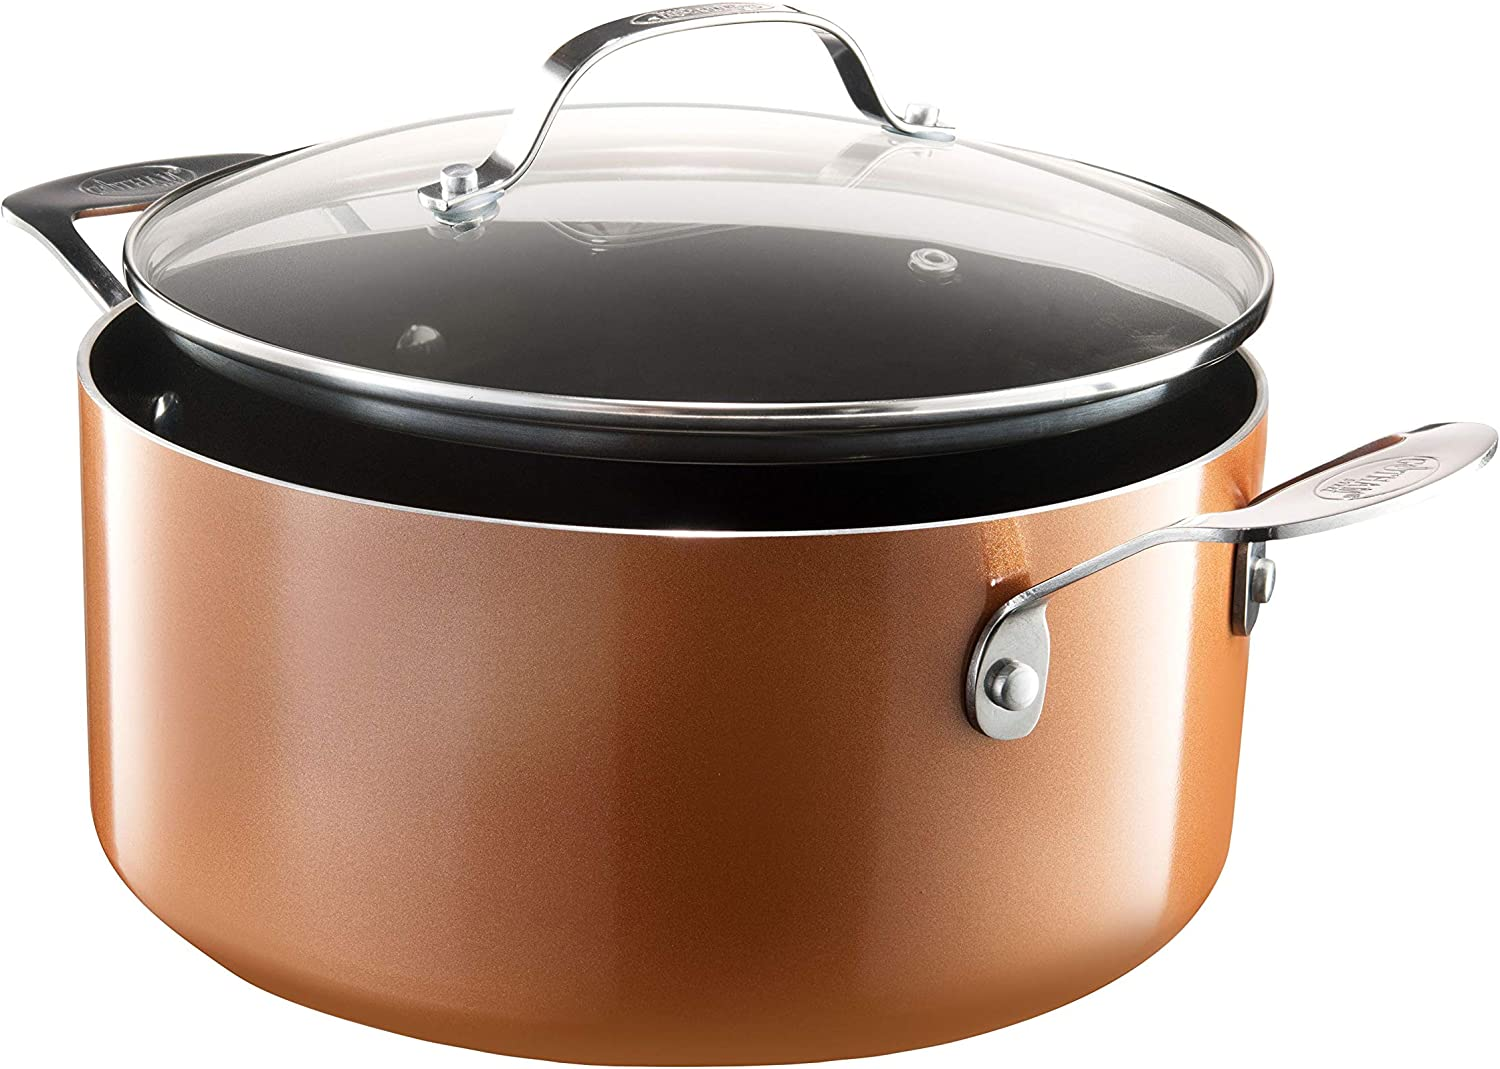 Gotham Steel Nonstick 5 Quart Stock Pot with Lid, Ultra Durable Mineral and Diamond Triple Coated Surface,100% PFOA Free, Stockpot with Stay Cool Stainless-Steel Handle, Oven & Dishwasher Safe